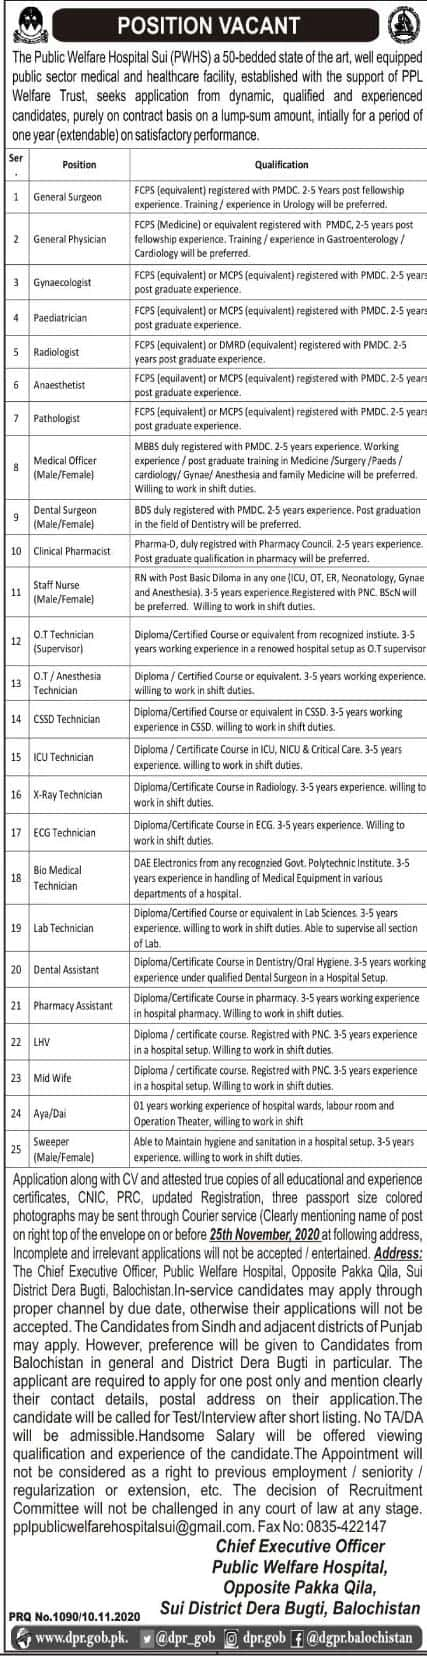 Jobs in public Welfare Hospital Nov 2020